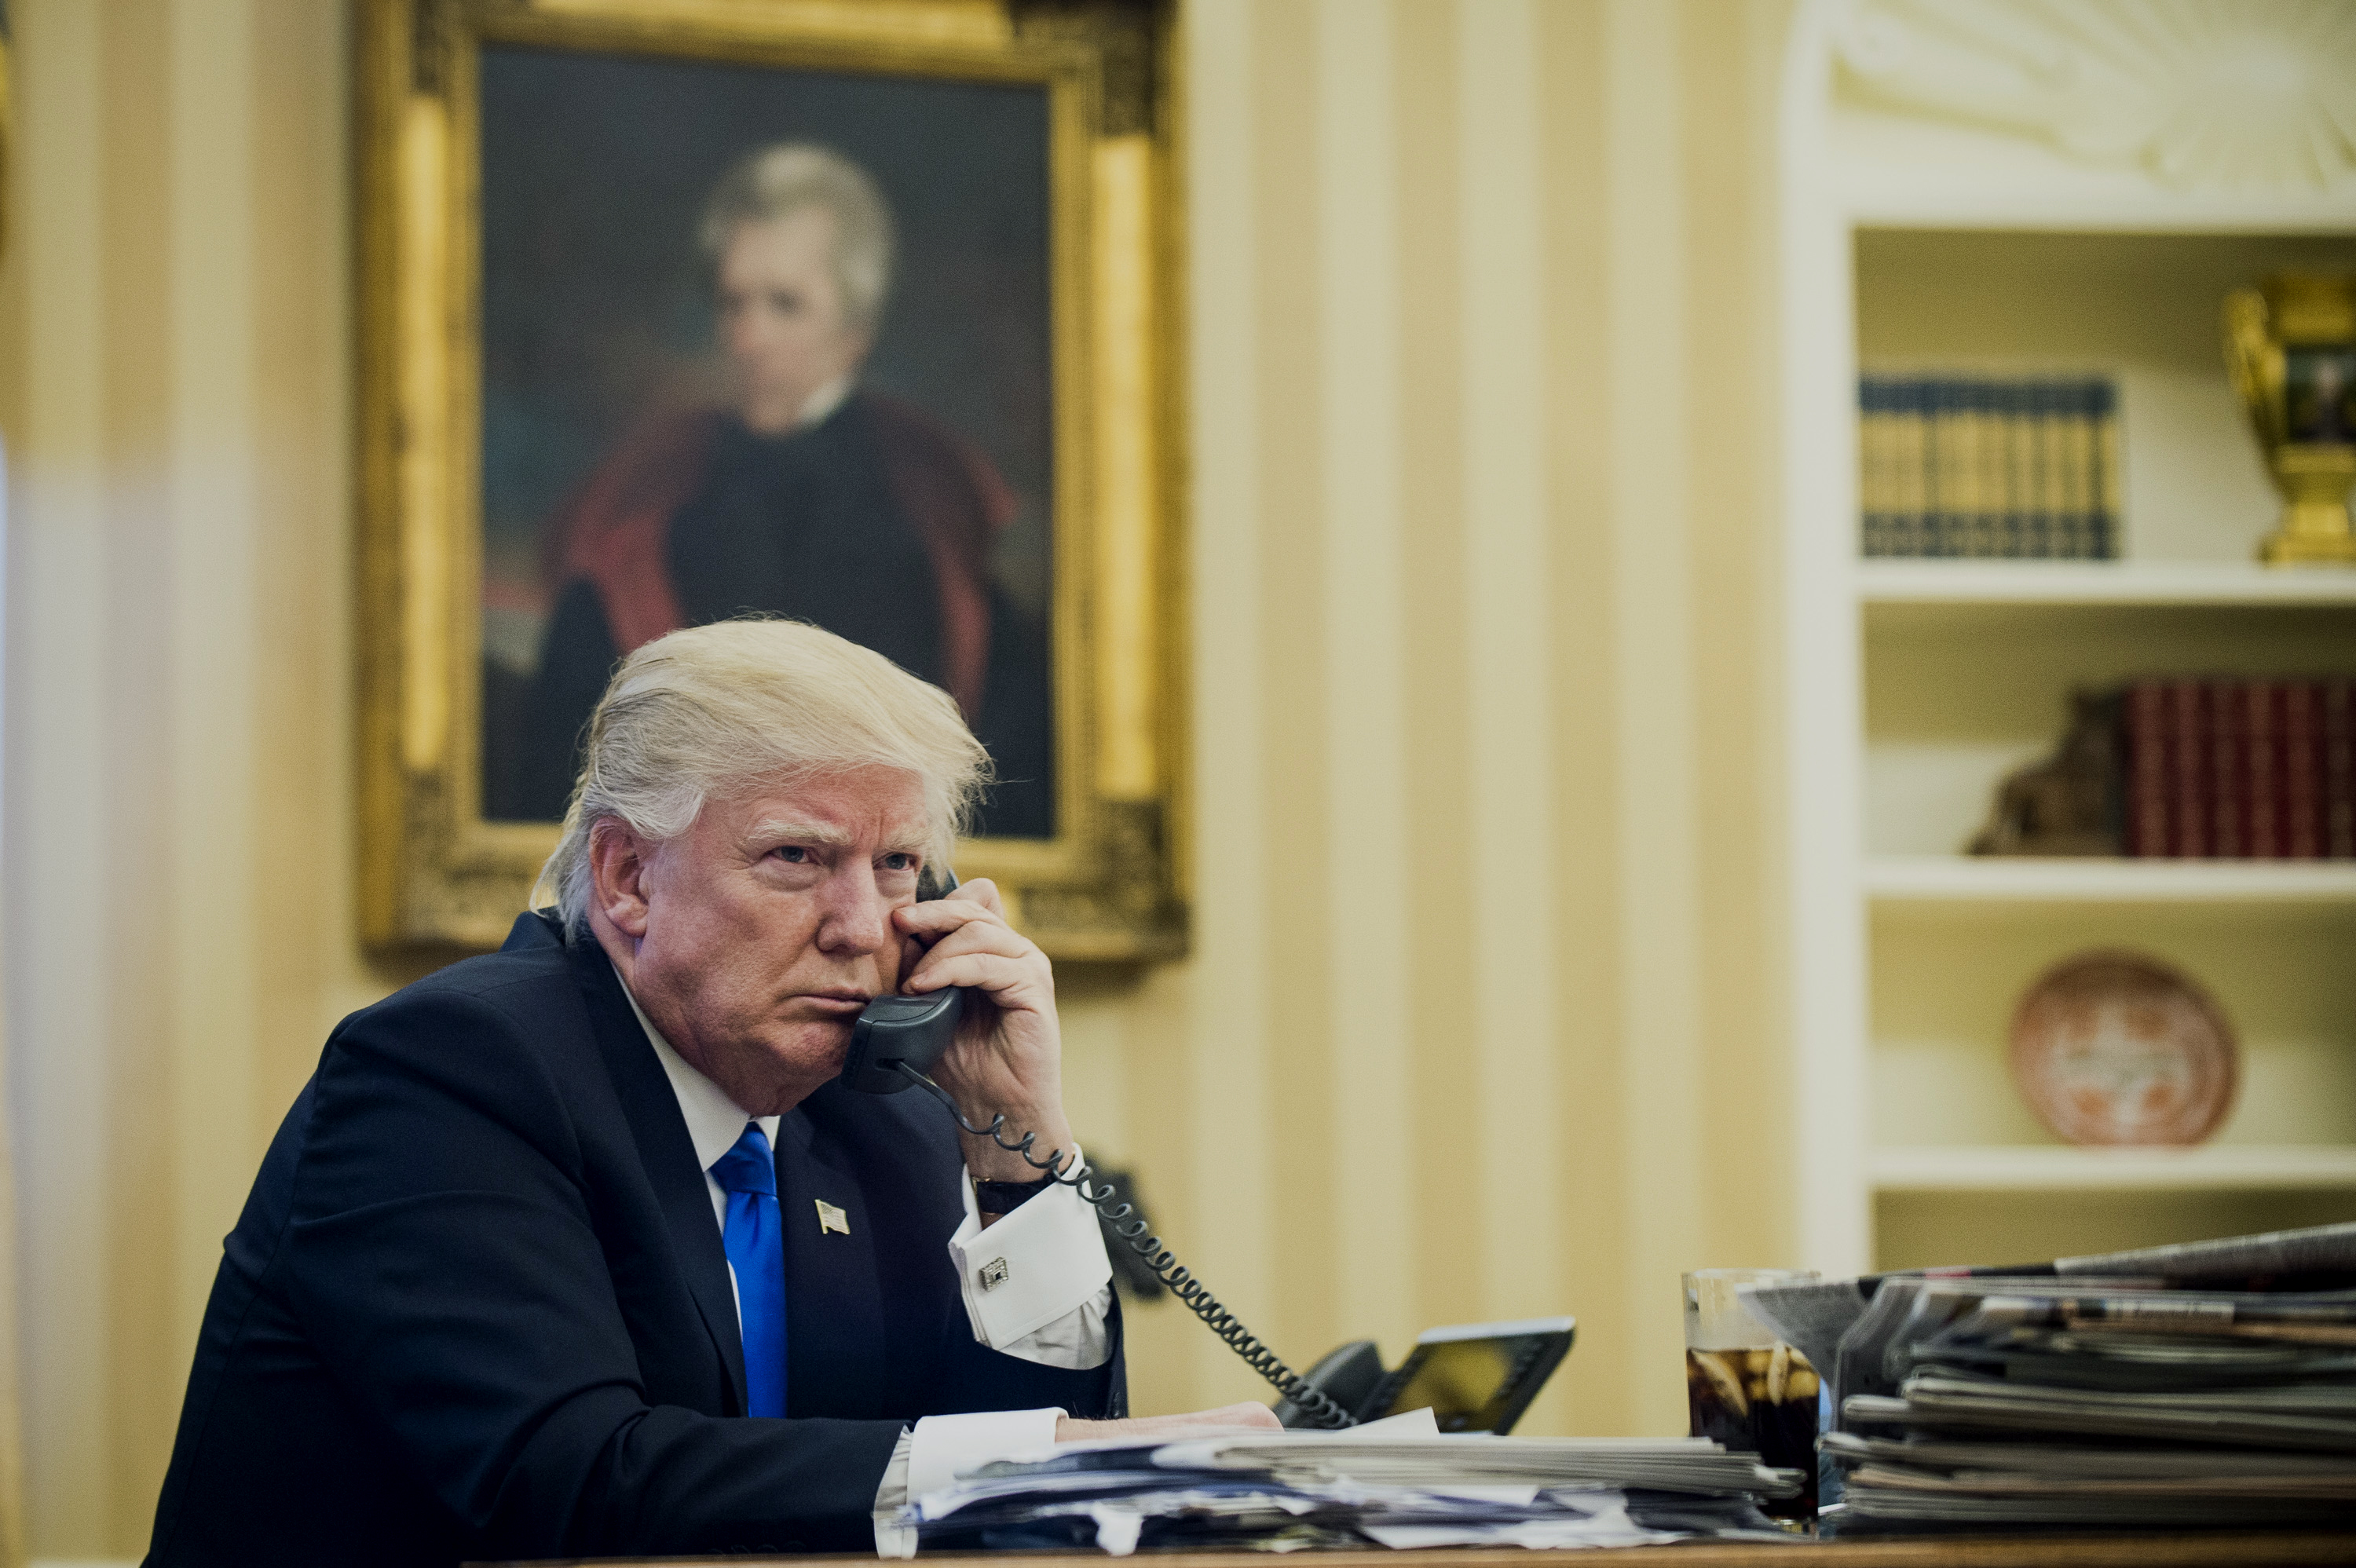 U.S. President Donald Trump speaks on the phone with Malcolm Turnbull, Australia's prime minister, during the first official phone talks in the Oval Office of the White House in Washington, D.C., U.S., on Saturday, Jan. 28, 2017.